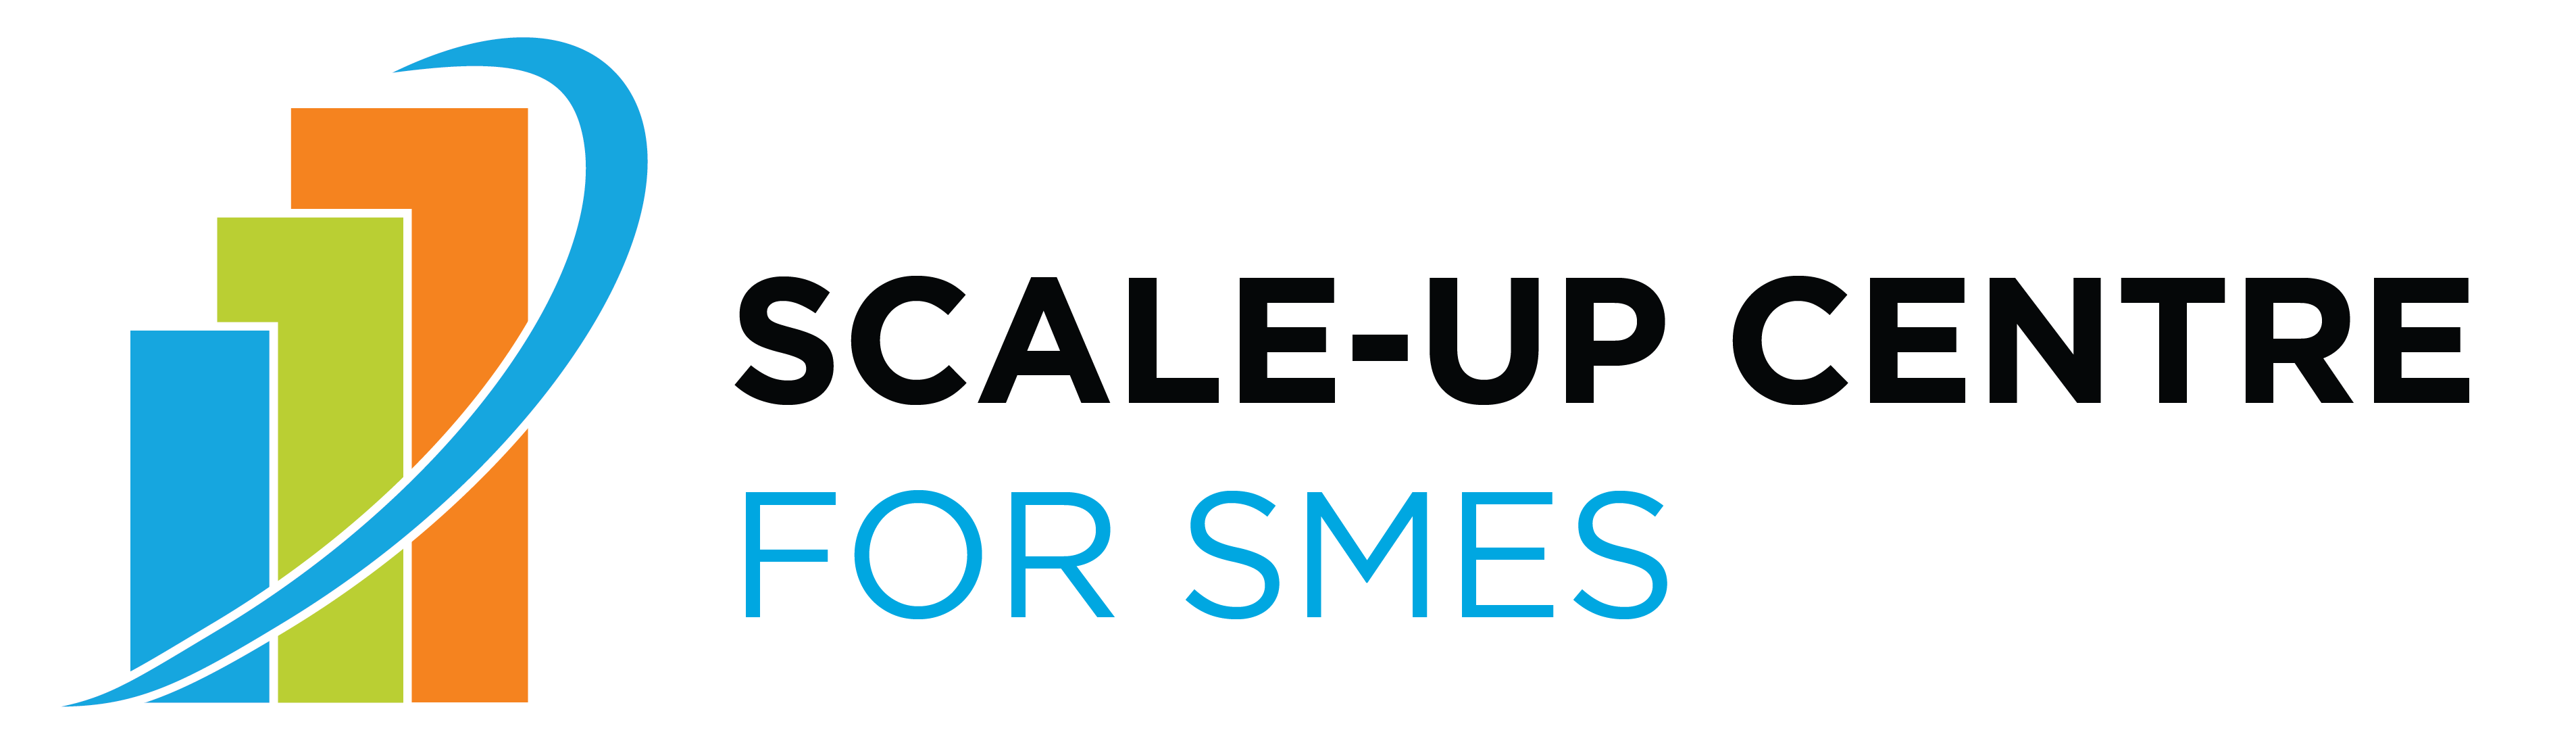 Scale-up Centre for SMEs